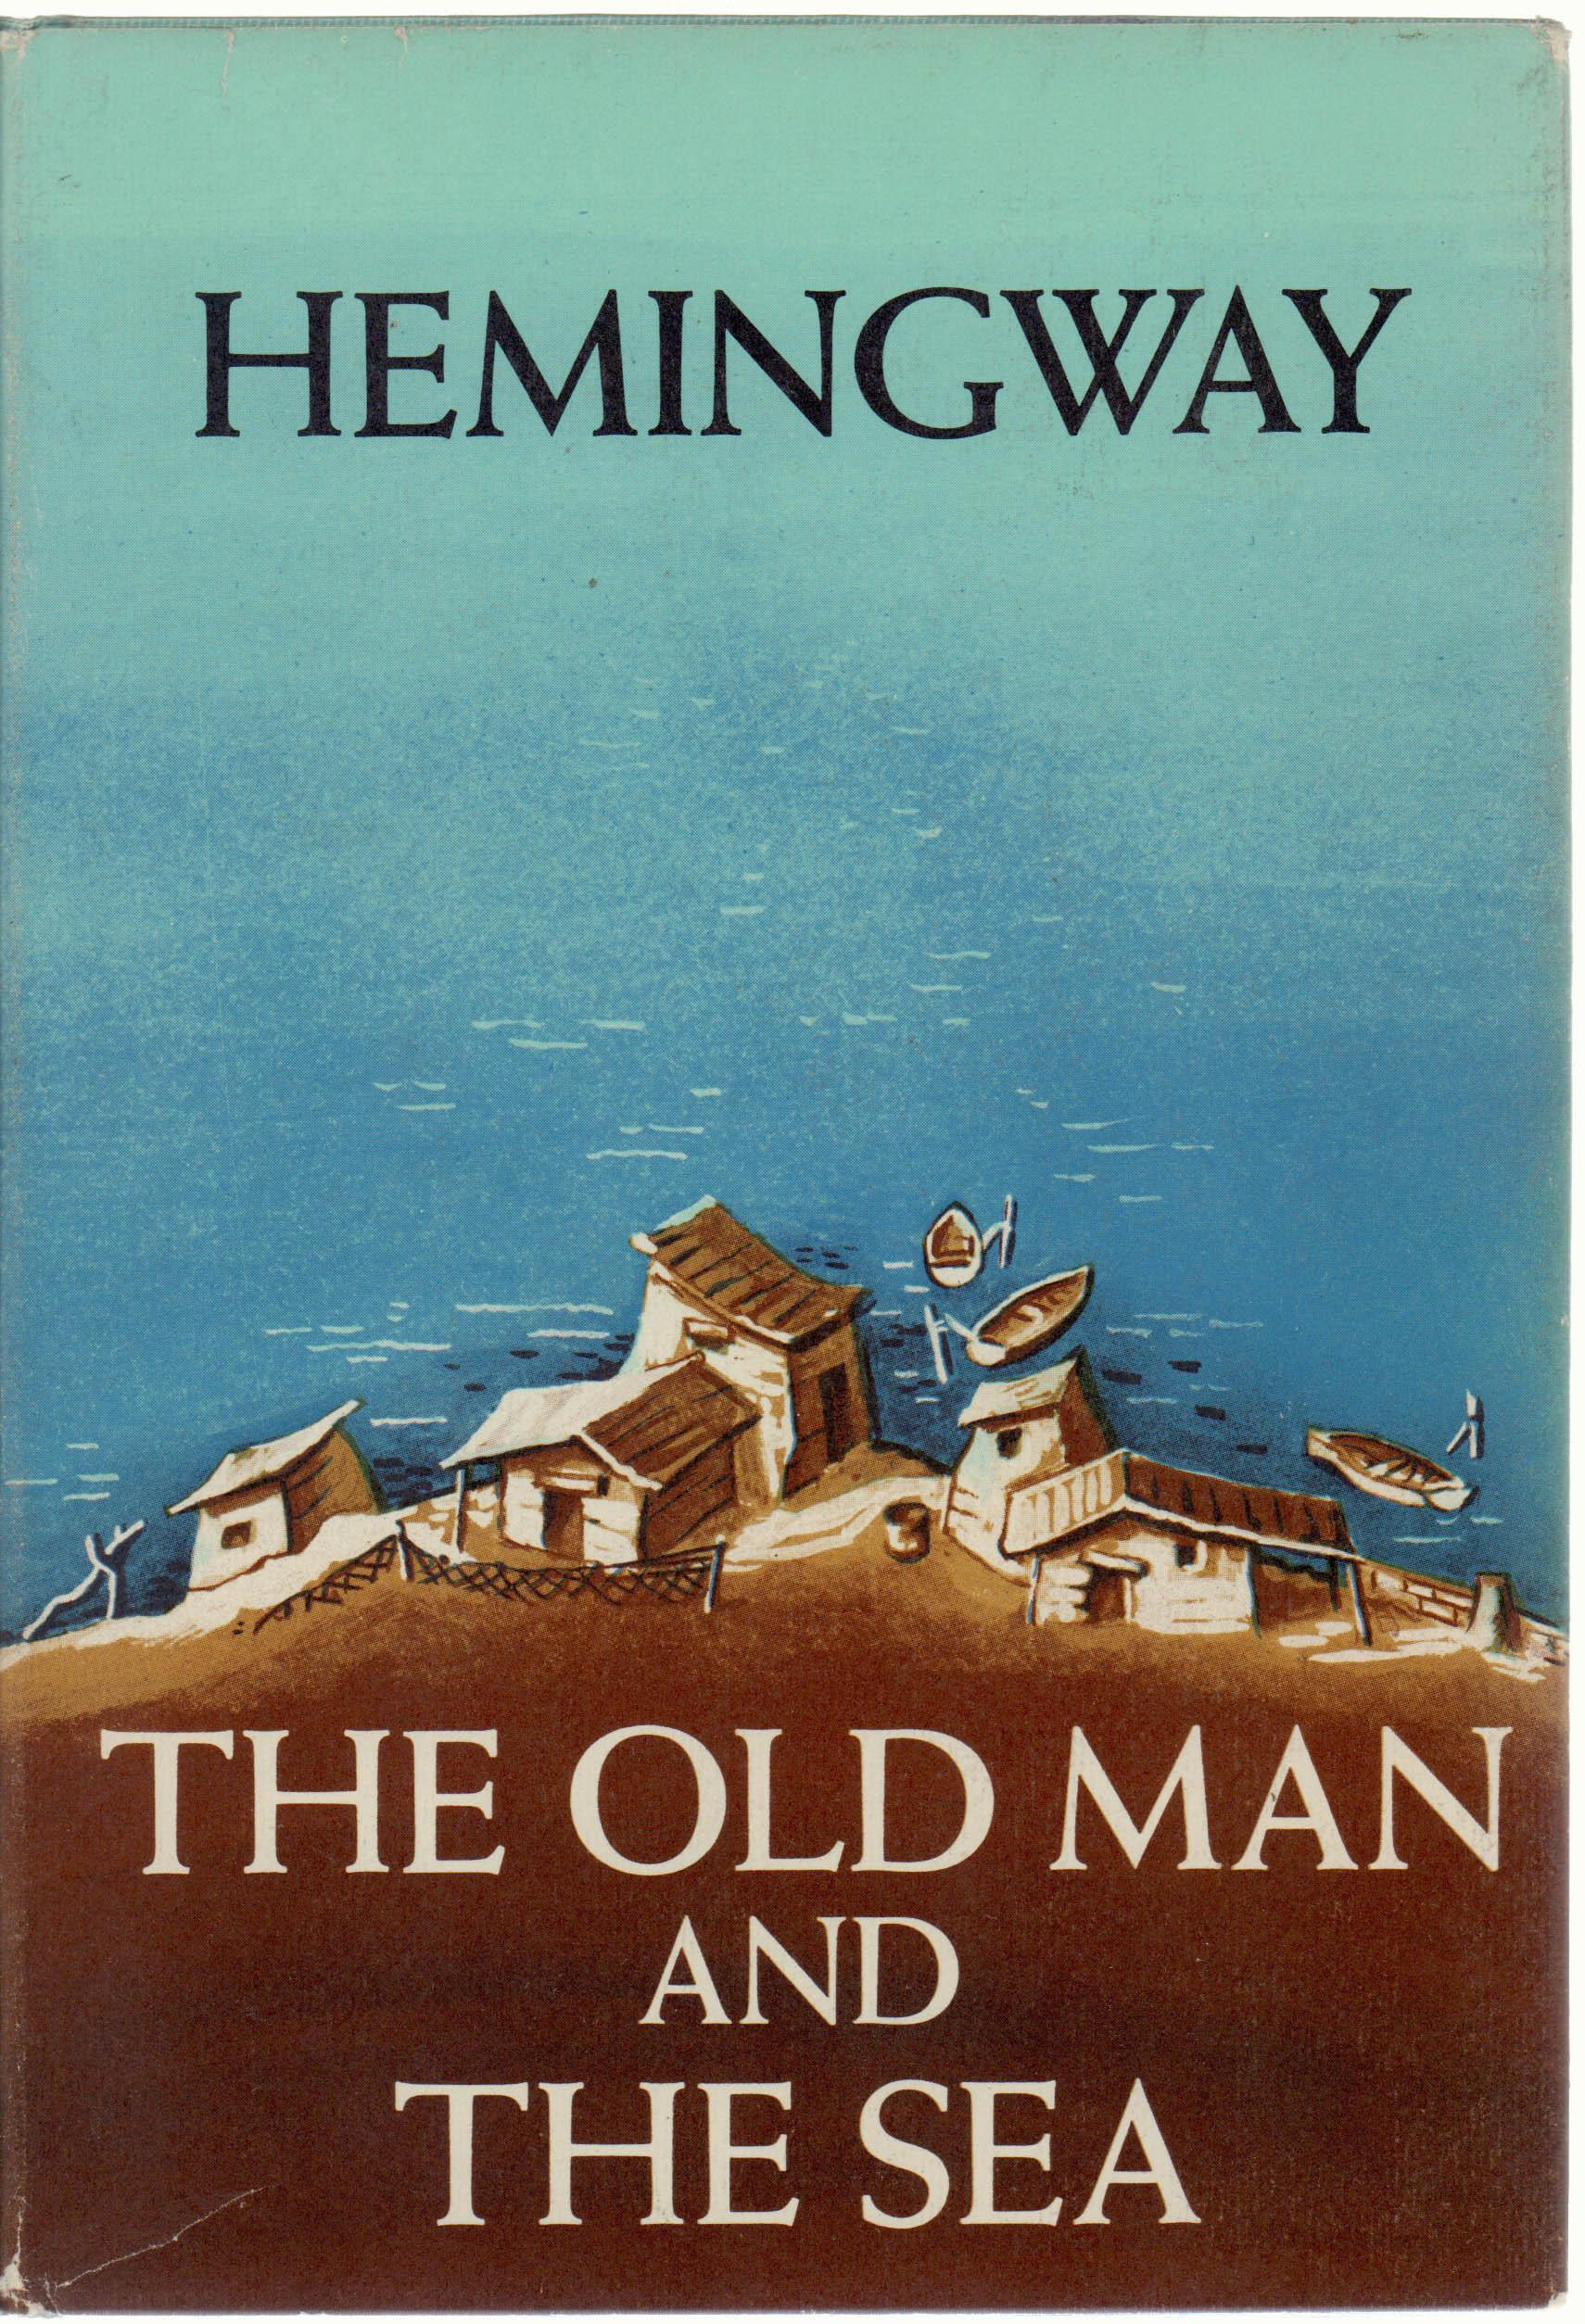 an outline of the old man and the sea by ernest hemingway The old man and the sea [ernest hemingway] on amazoncom free shipping on qualifying offers the old man and the sea is one of hemingway's most enduring works told in language of great simplicity and power.